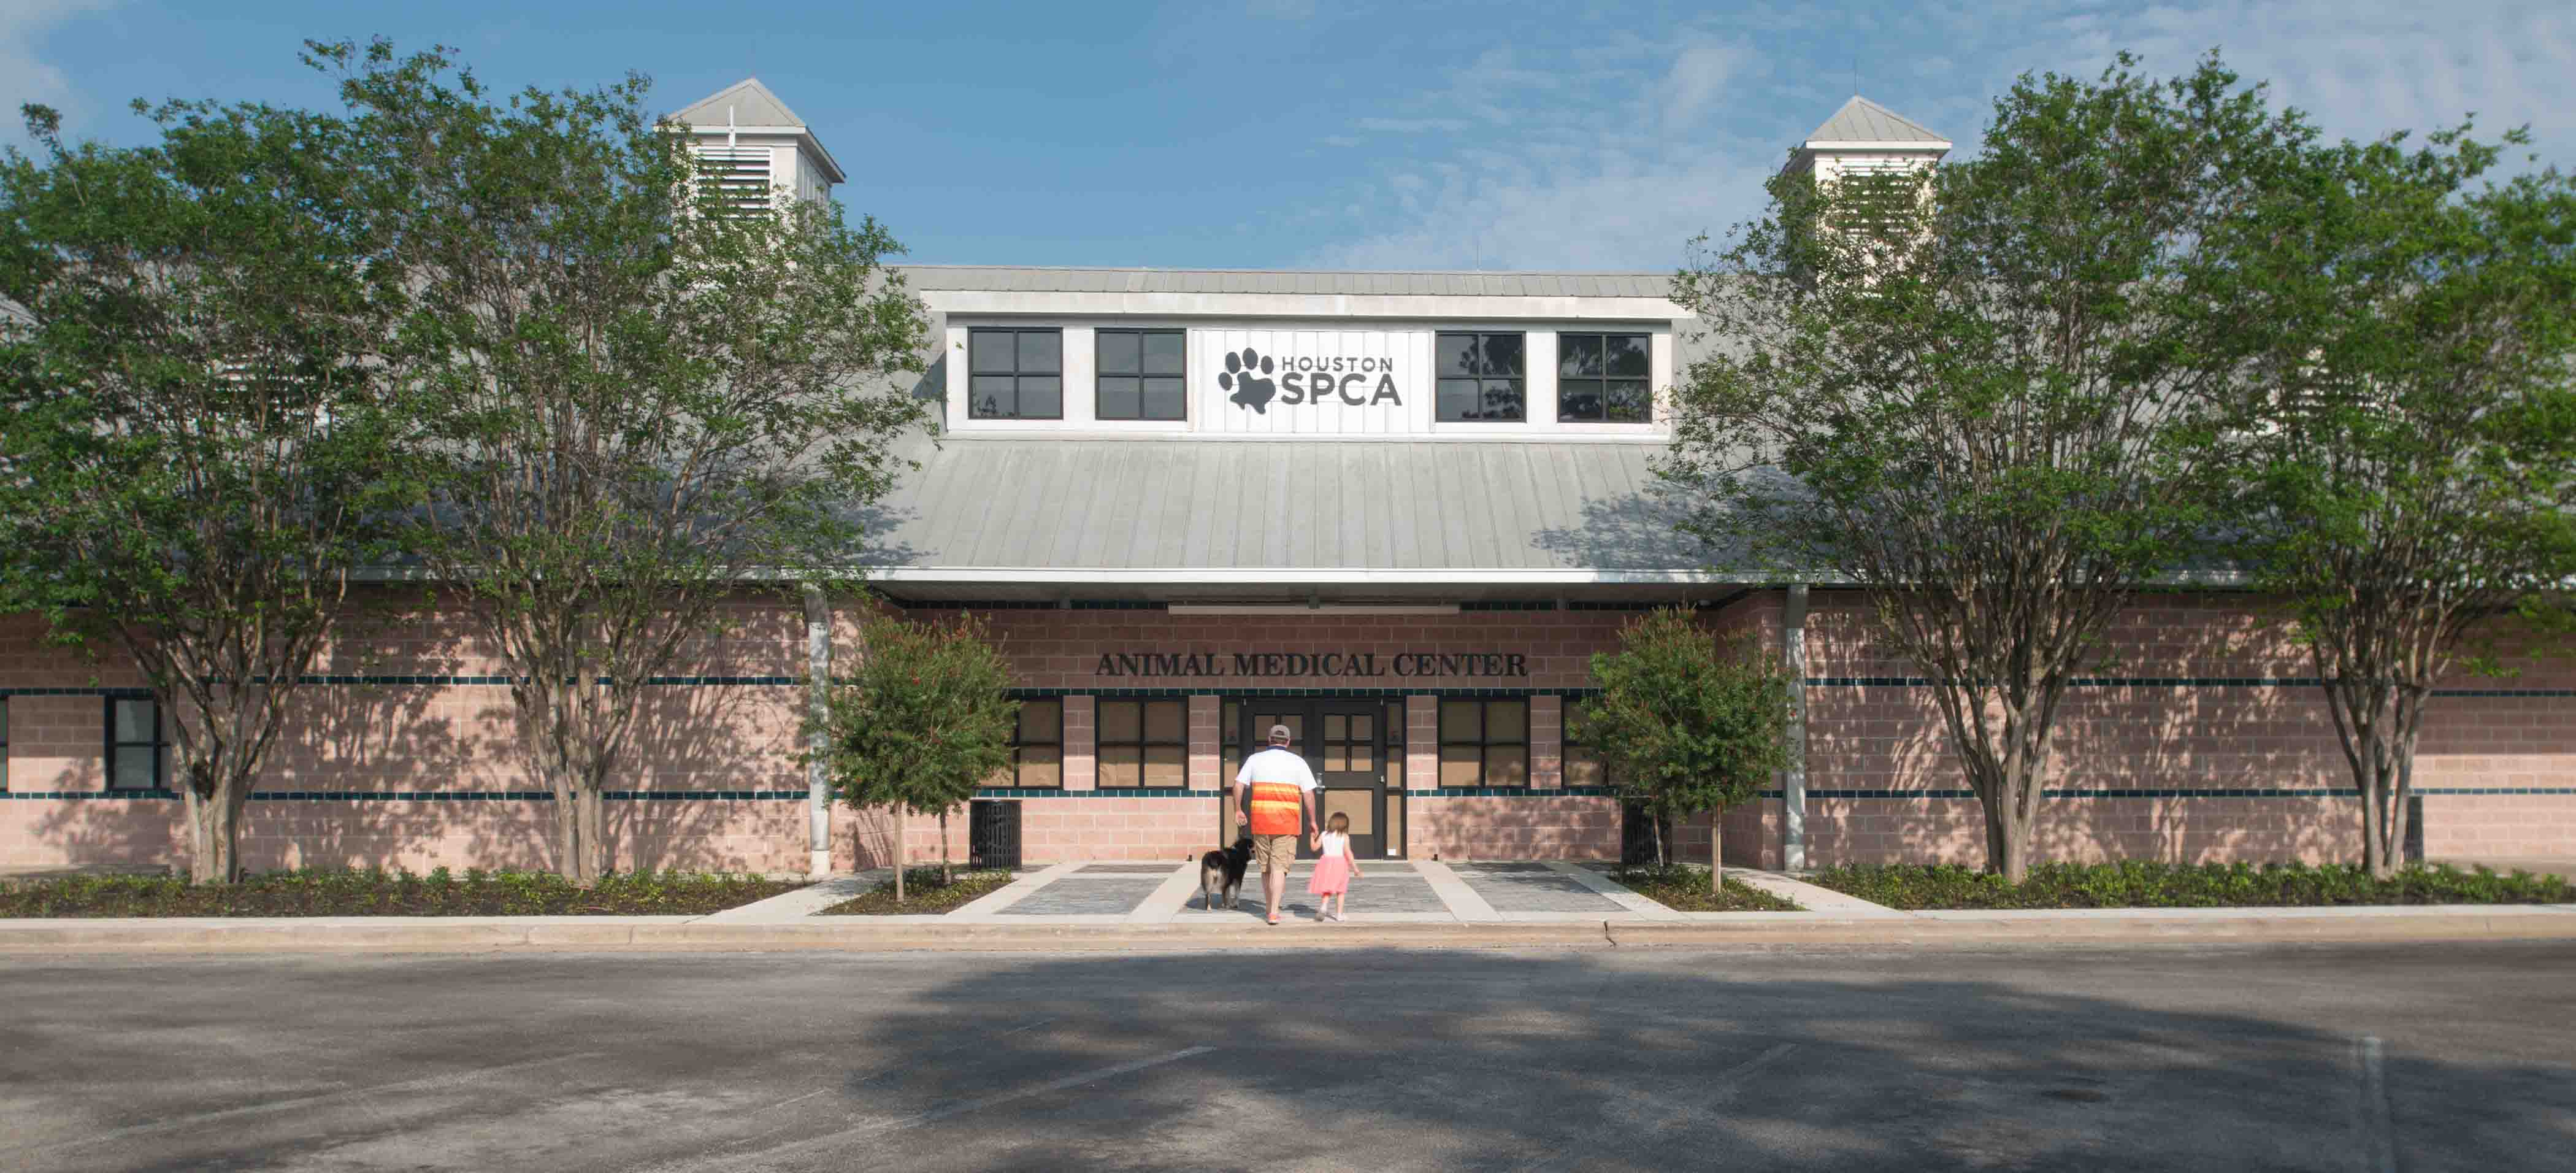 Jackson & Ryan Architects Houston SPCA Campus for All Animals 1 Animal Medical Center.jpg